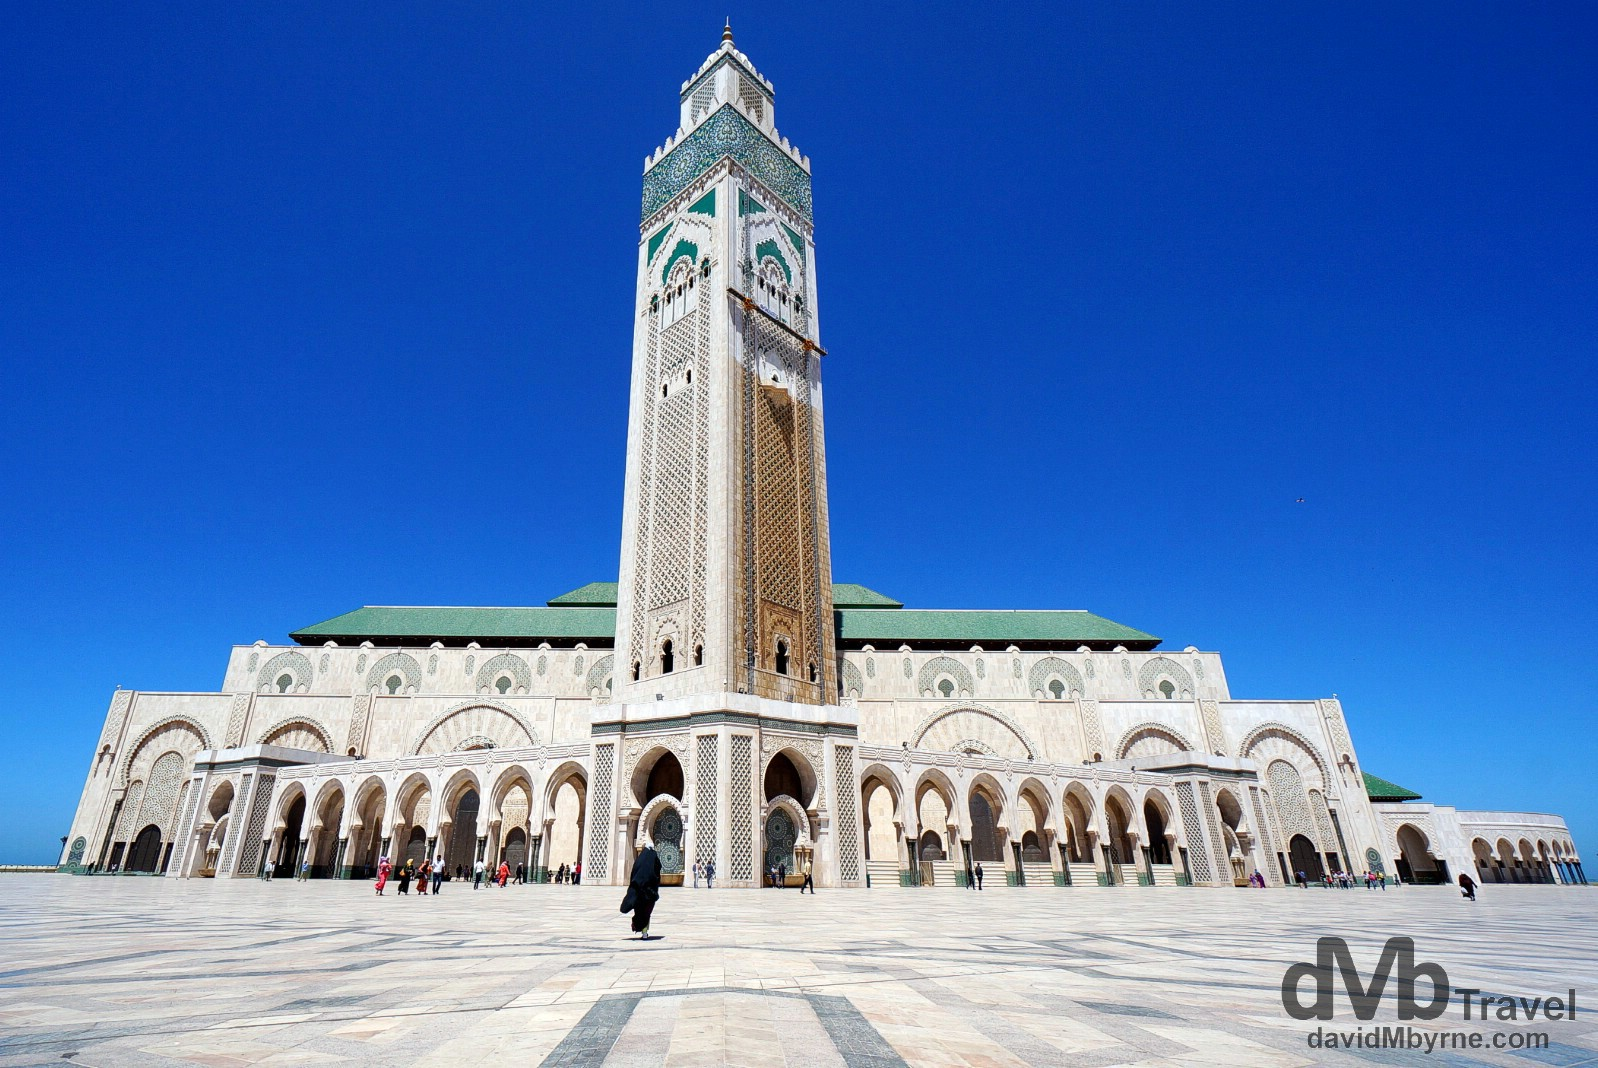 Hassan II Mosque, Casablanca, Morocco. April 28th, 2014.